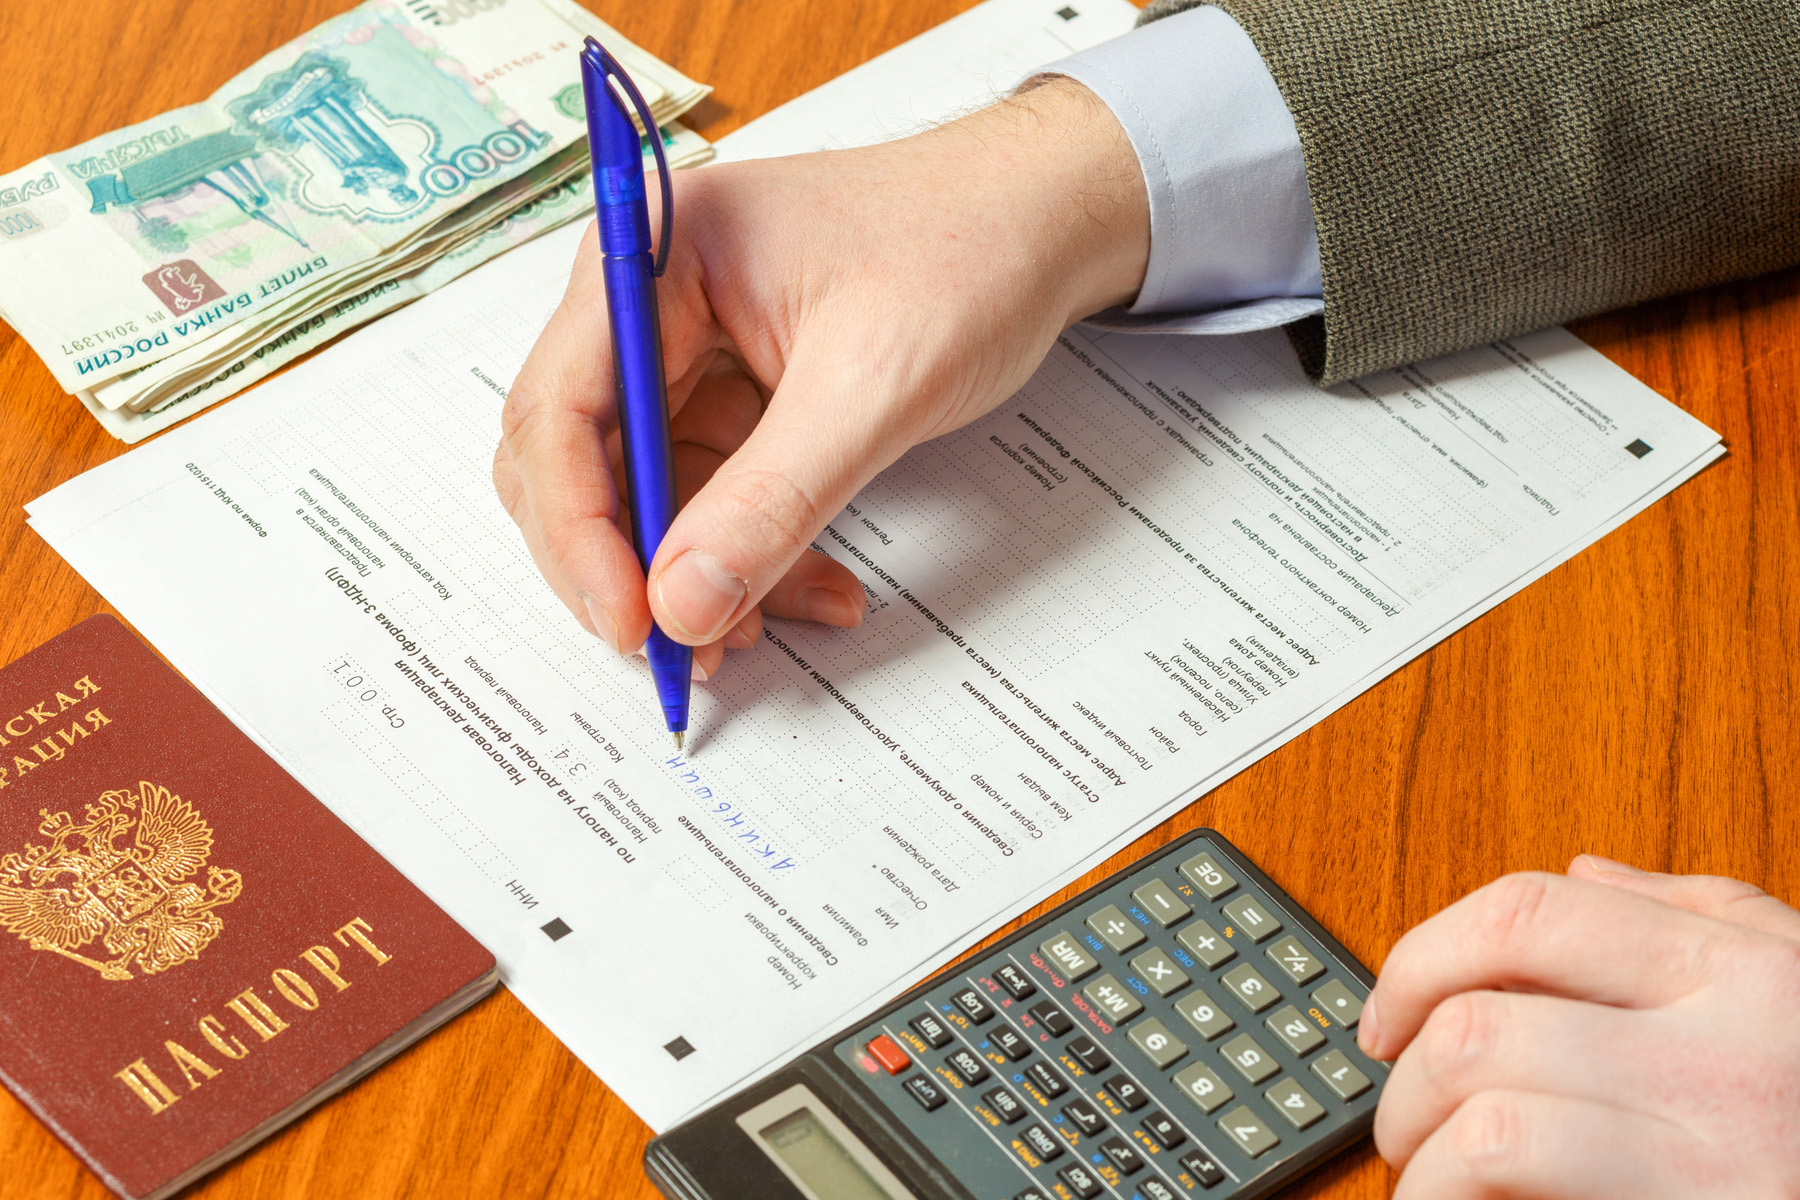 Completing a Russian tax form